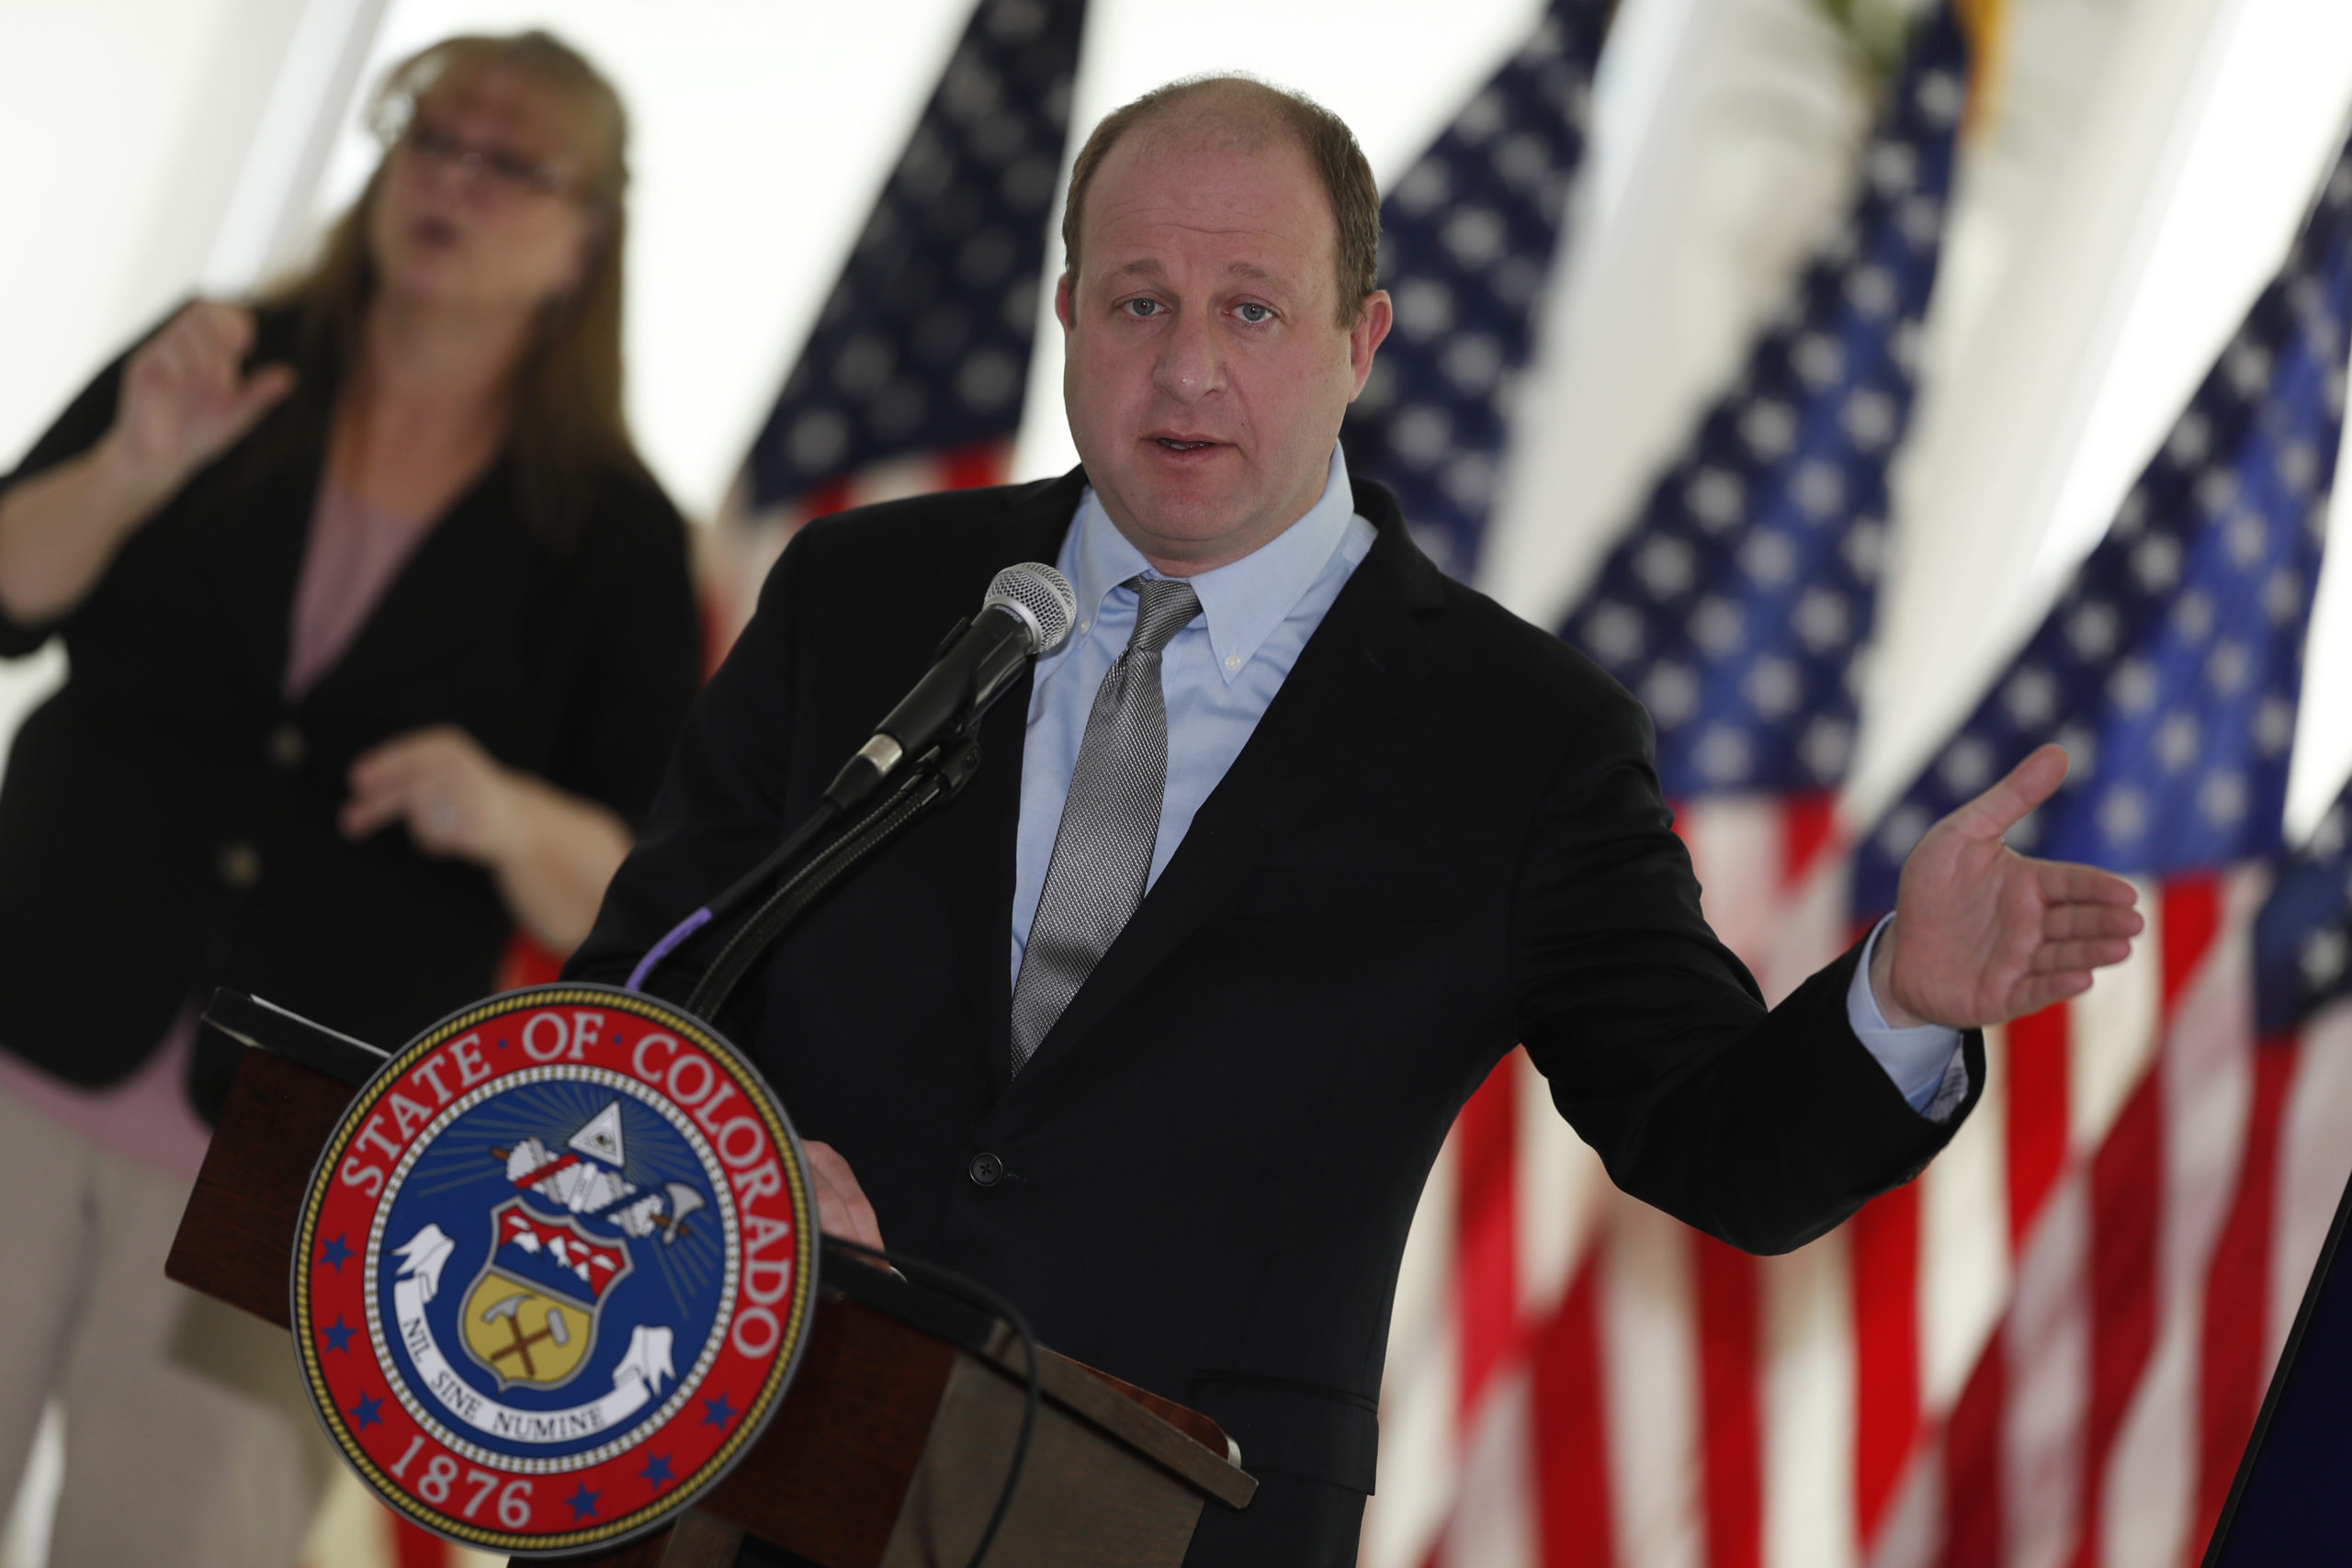 Colorado Gov. Jared Polis makes a point during a news conference as a statewide stay-at-home order remains in effect in an effort to reduce the spread of the new coronavirus Wednesday, April 8, 2020, in the governor's mansion in Denver.